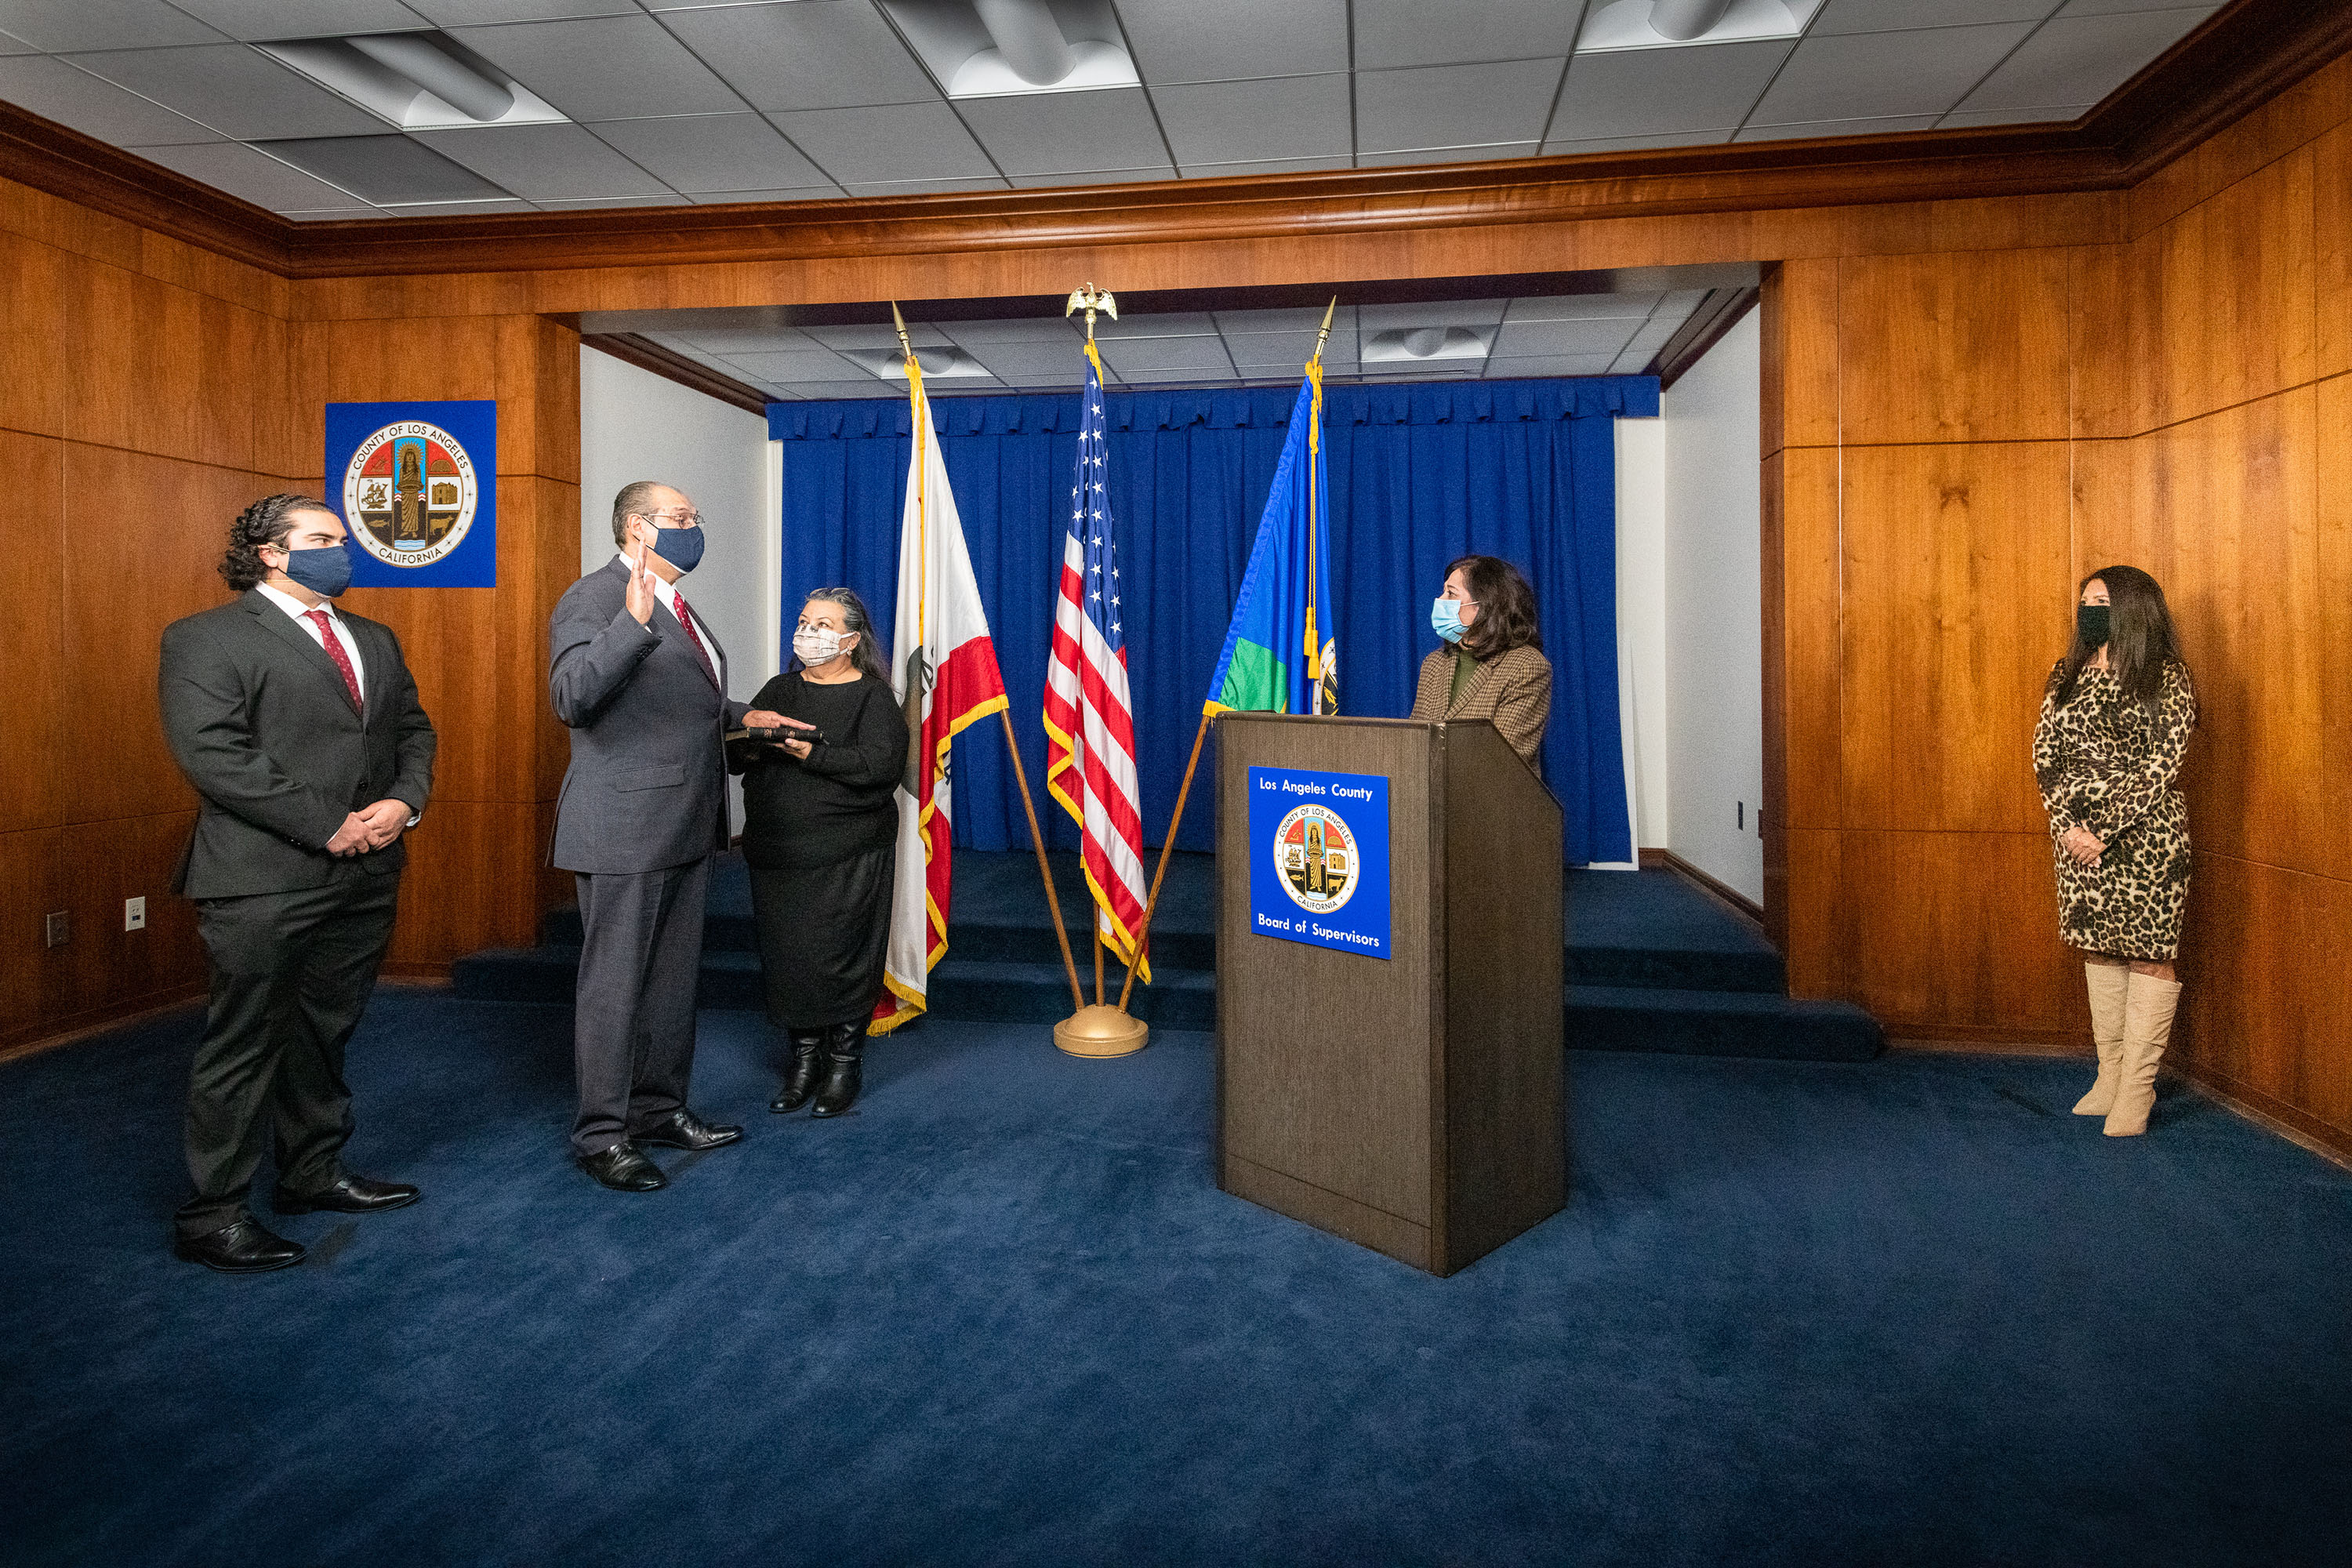 Executive Office<br><b>Jan. 27, 2021 - Adolfo Gonzales Chief Probation Officer Oath of Office </b><br>  <i>Photo by Bryan Chan / Board of Supervisors</i>